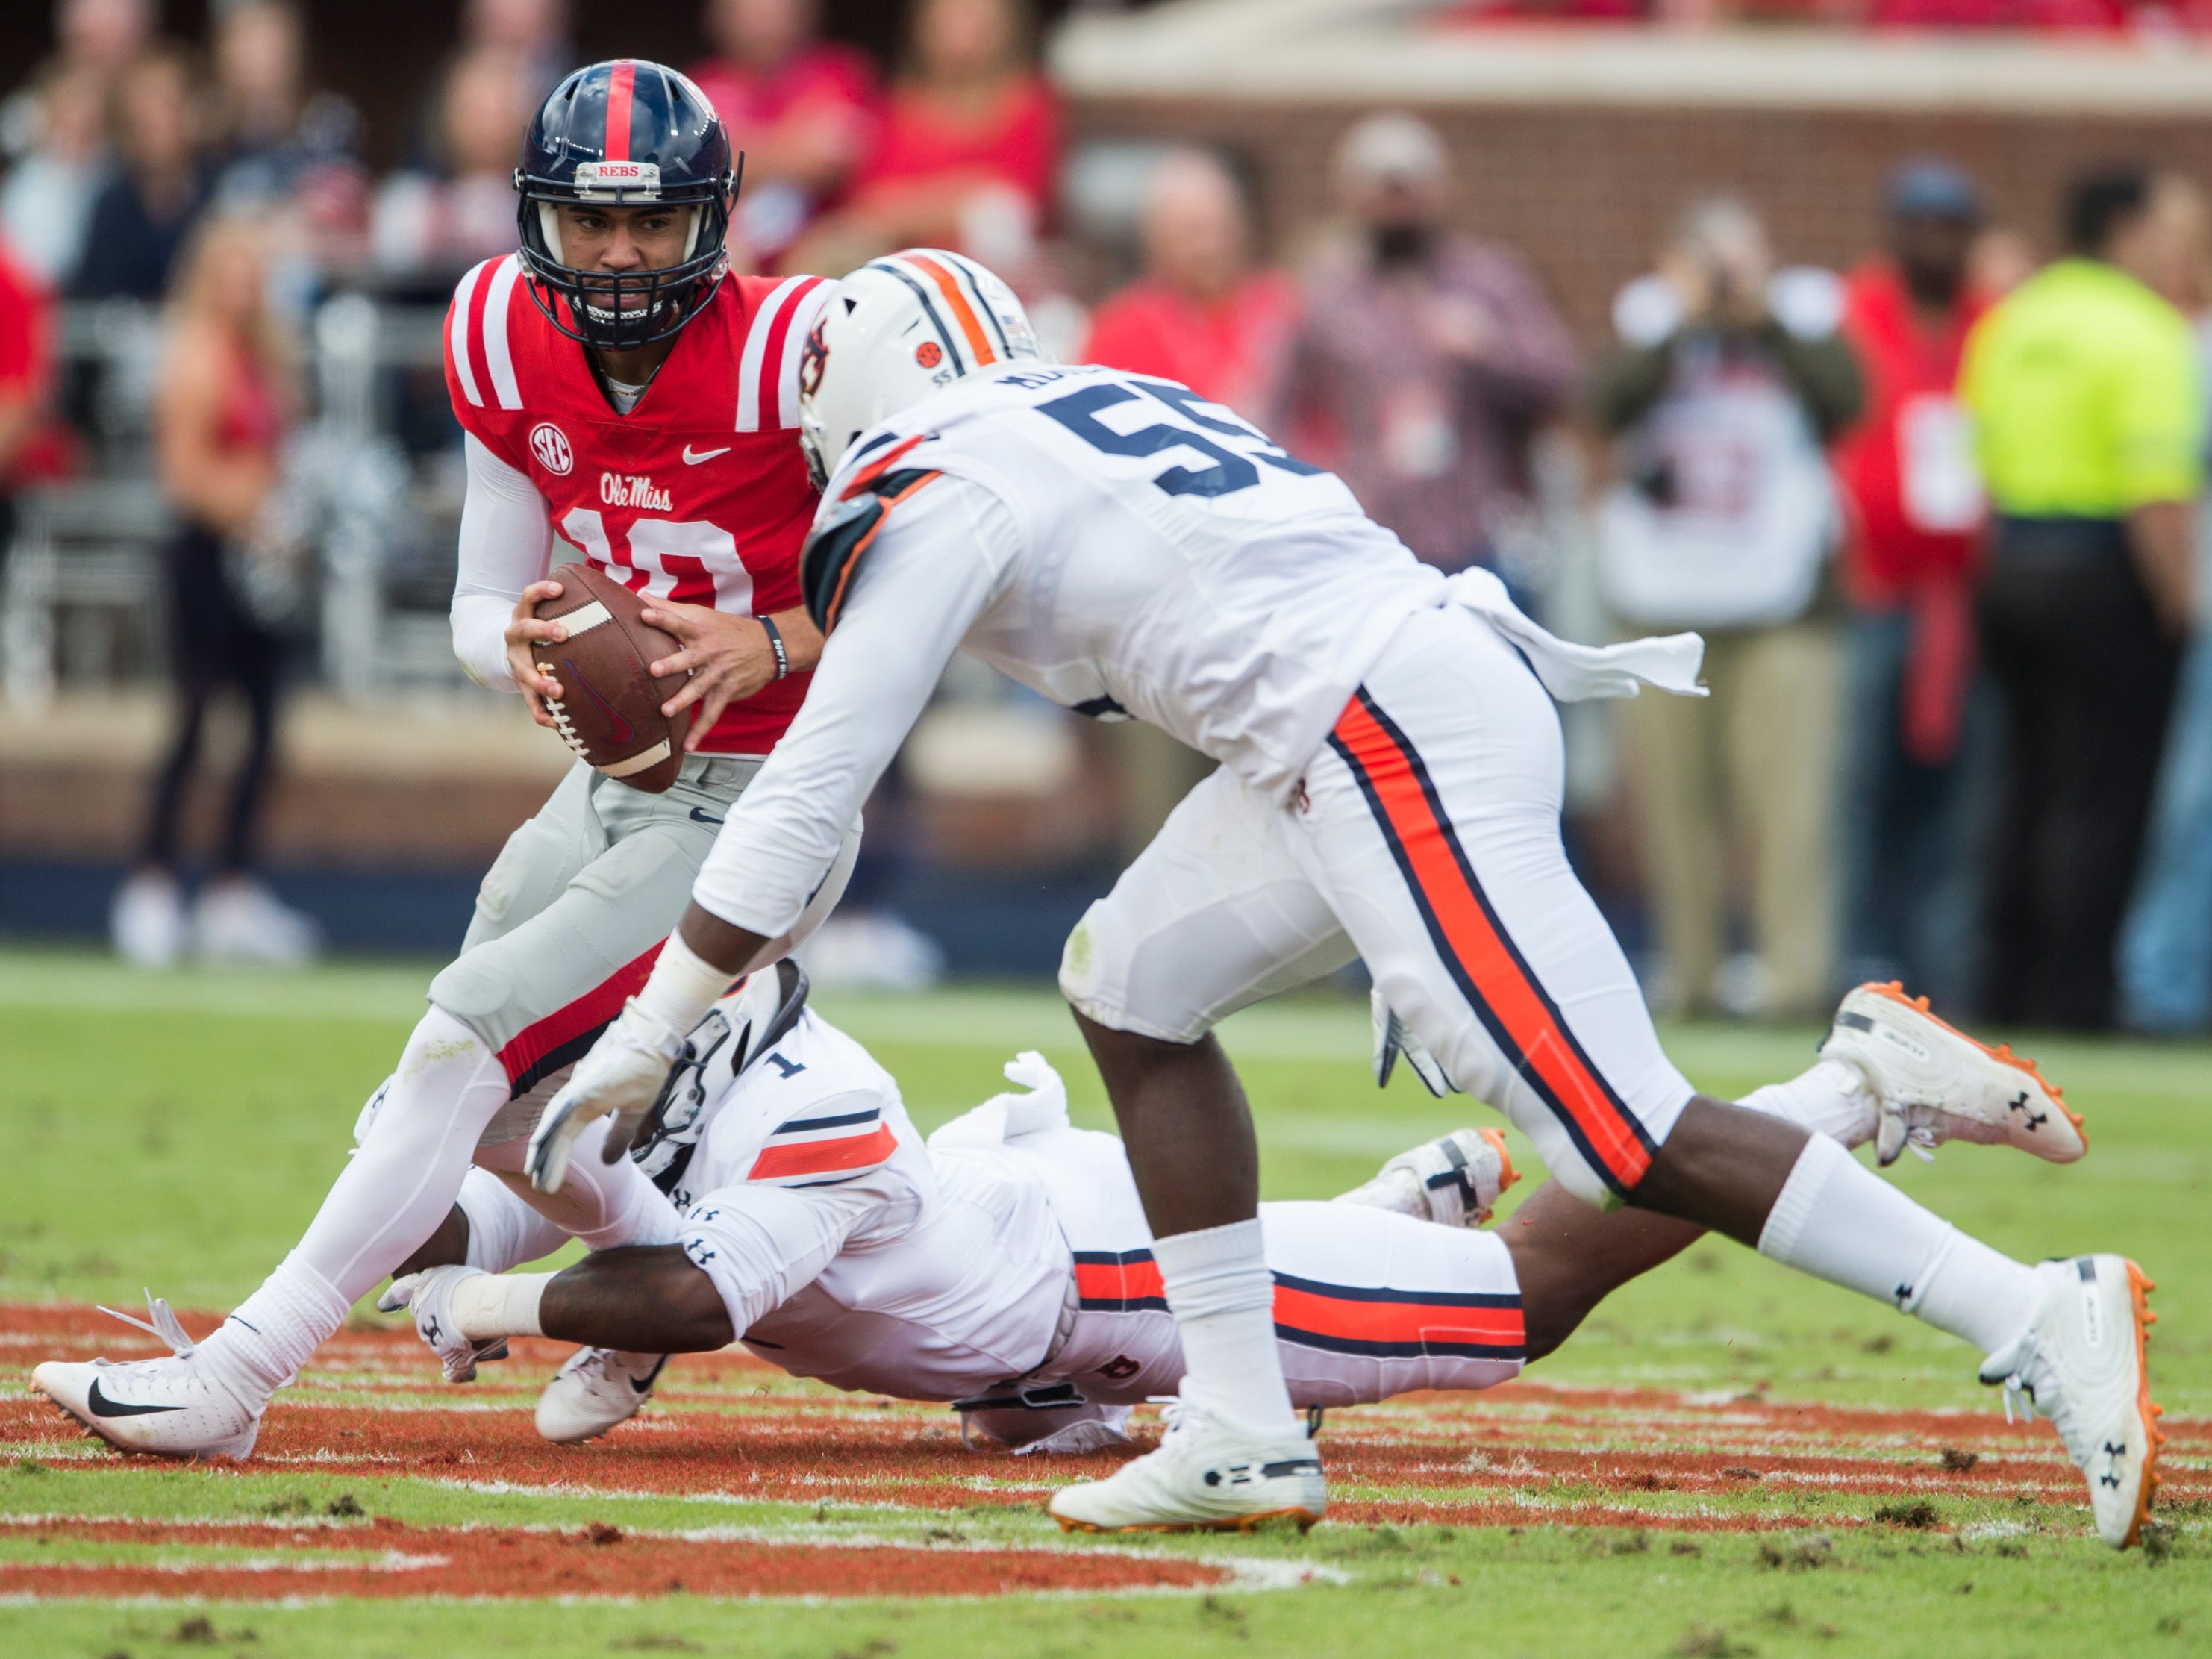 Ole Miss' Jordan Ta'amu (10) avoids Auburn defenders at Vaught-Hemingway Stadium in Oxford, Miss., on Saturday, Oct. 20, 2018. Auburn leads Ole Miss 10-6 at halftime.